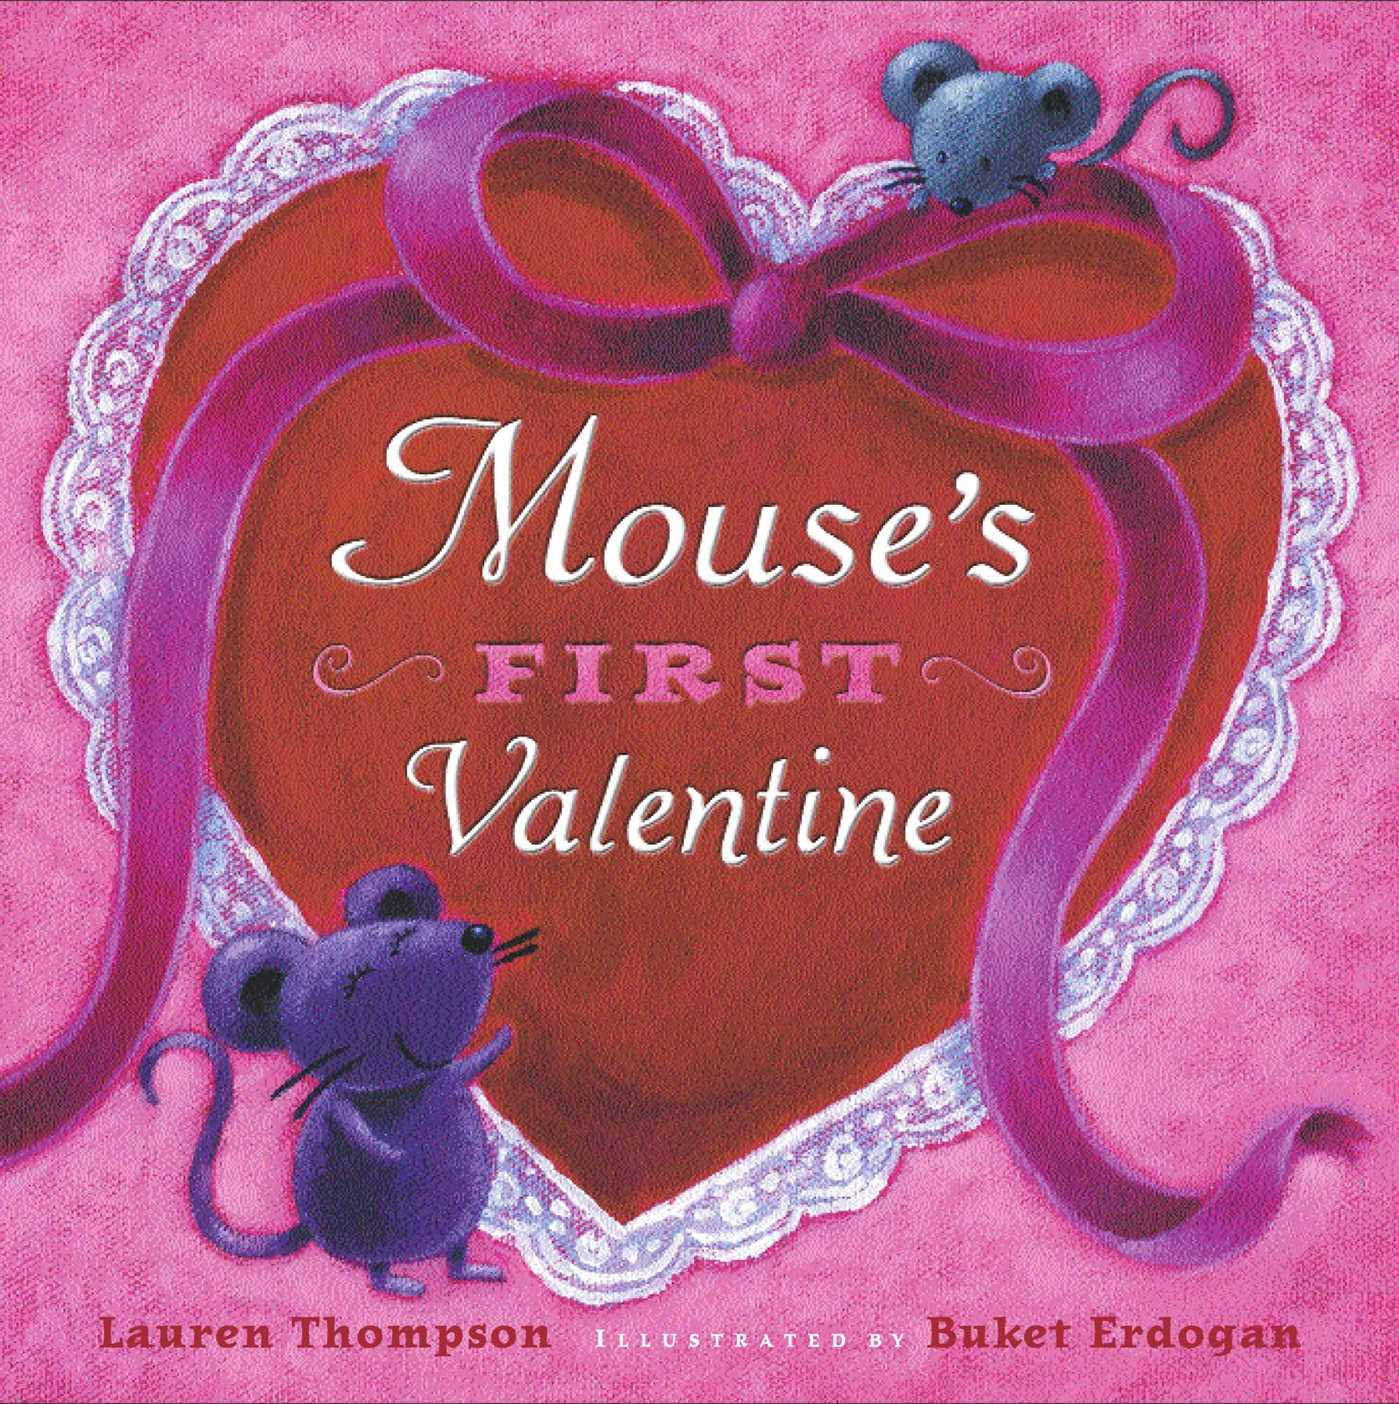 Mouses first valentine 9781442457683 hr